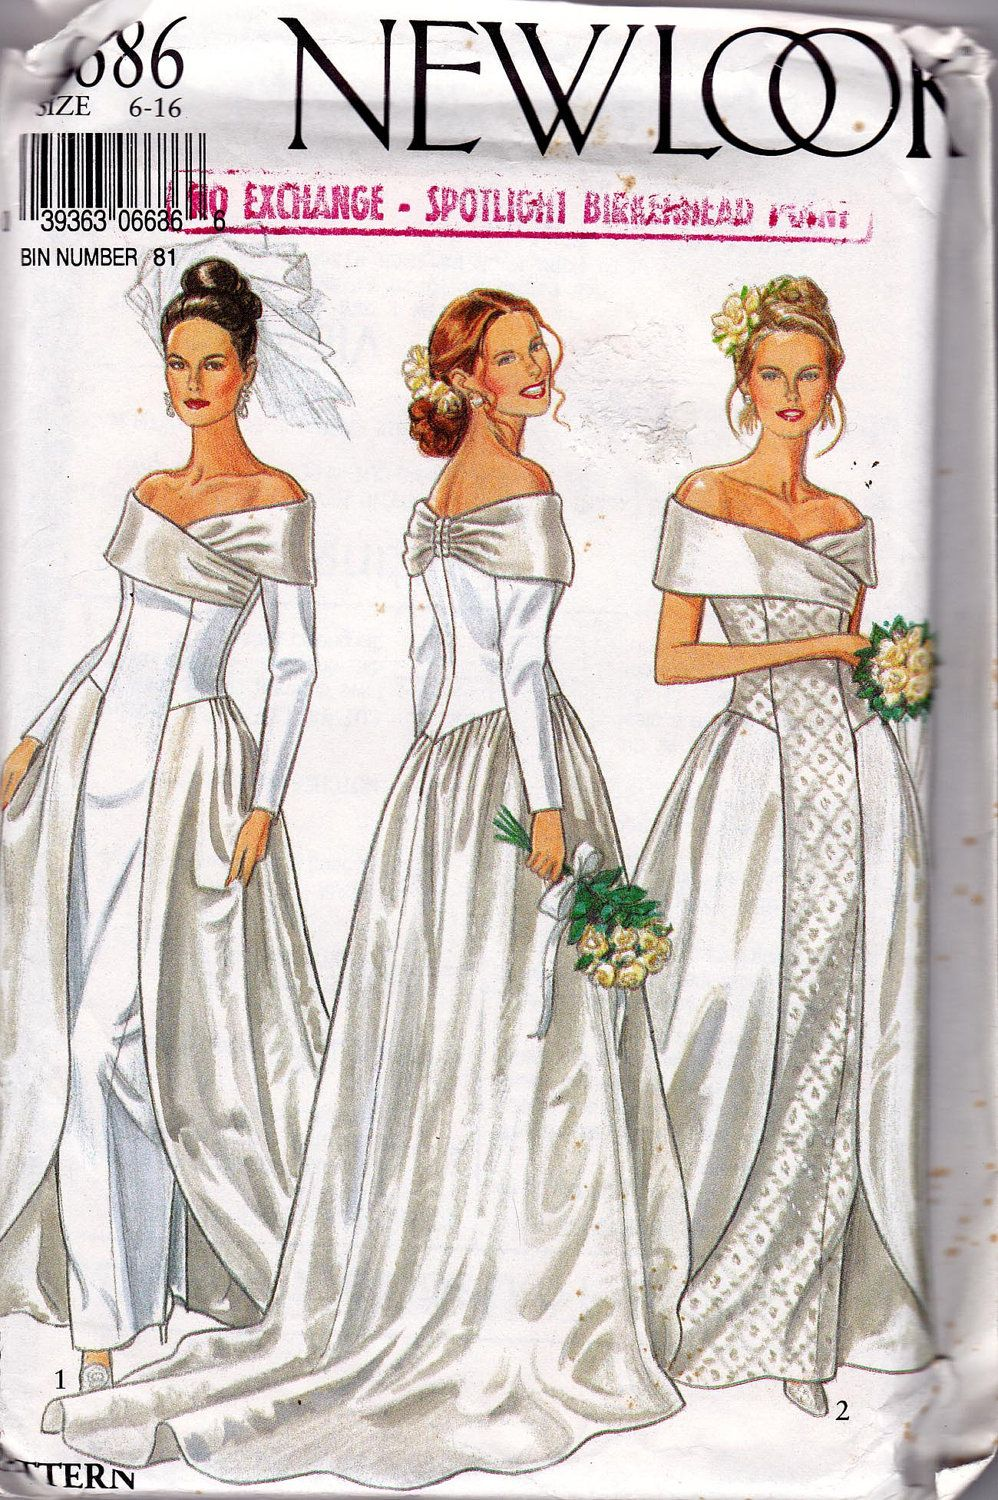 Sewing Pattern New Look 6686 Wedding Dresses | Sewing Patterns ...